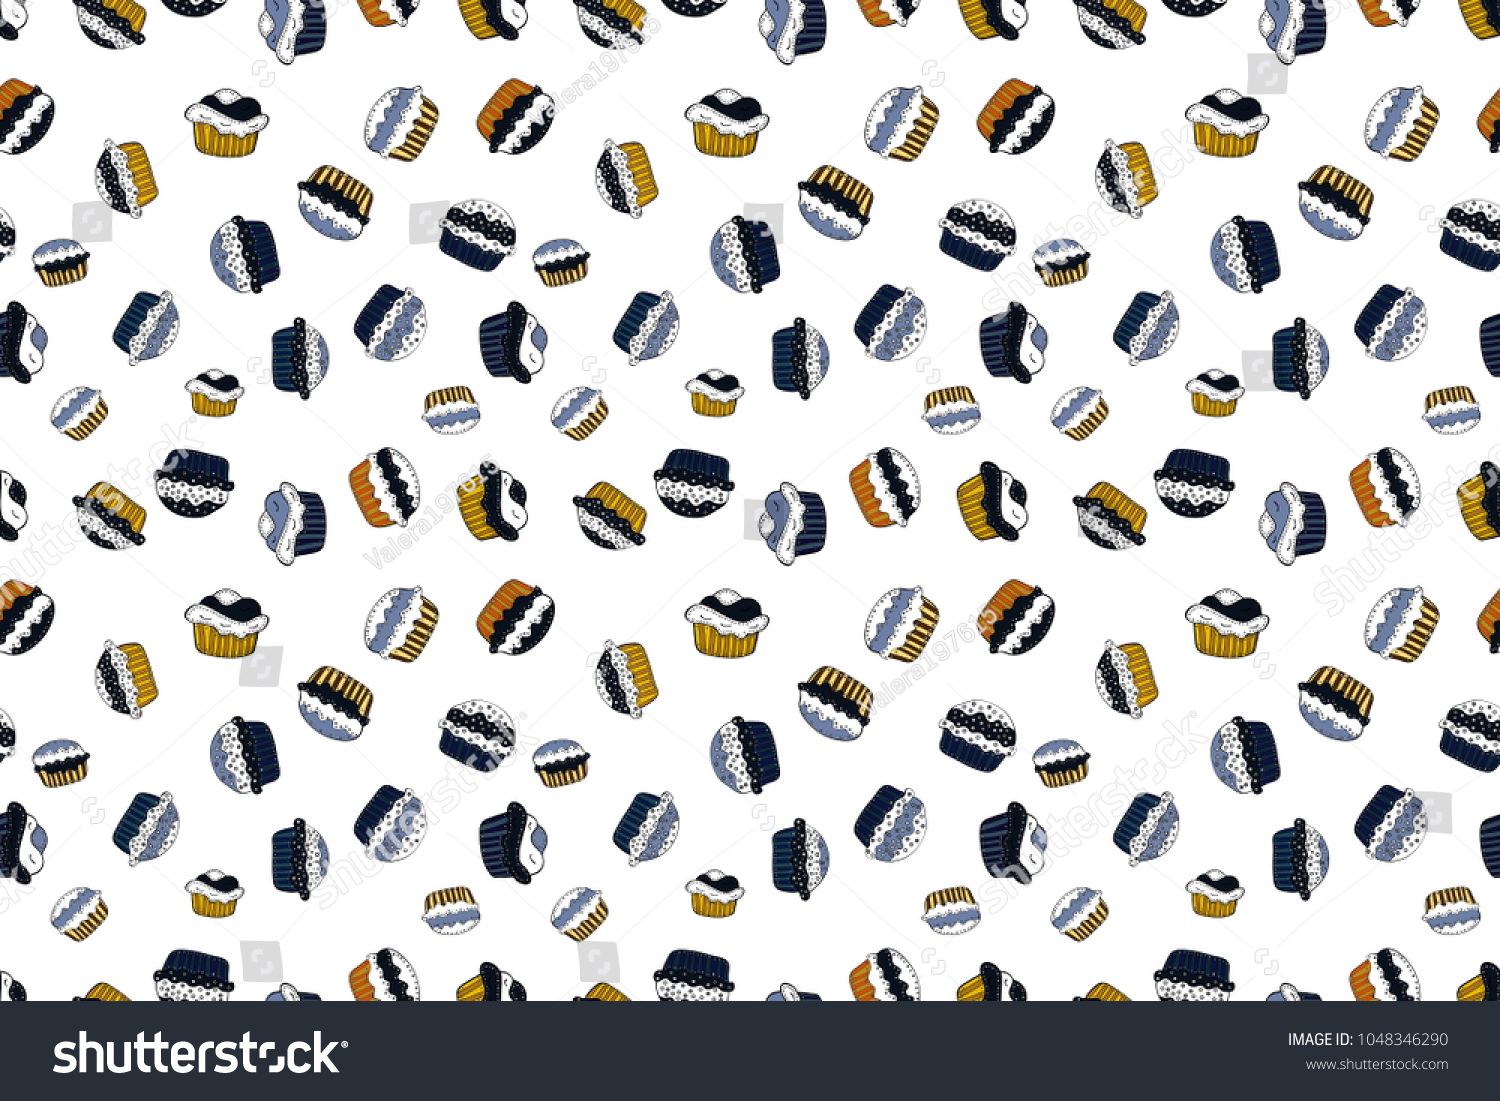 cupcake pattern background happy birthday cupcake stock illustration